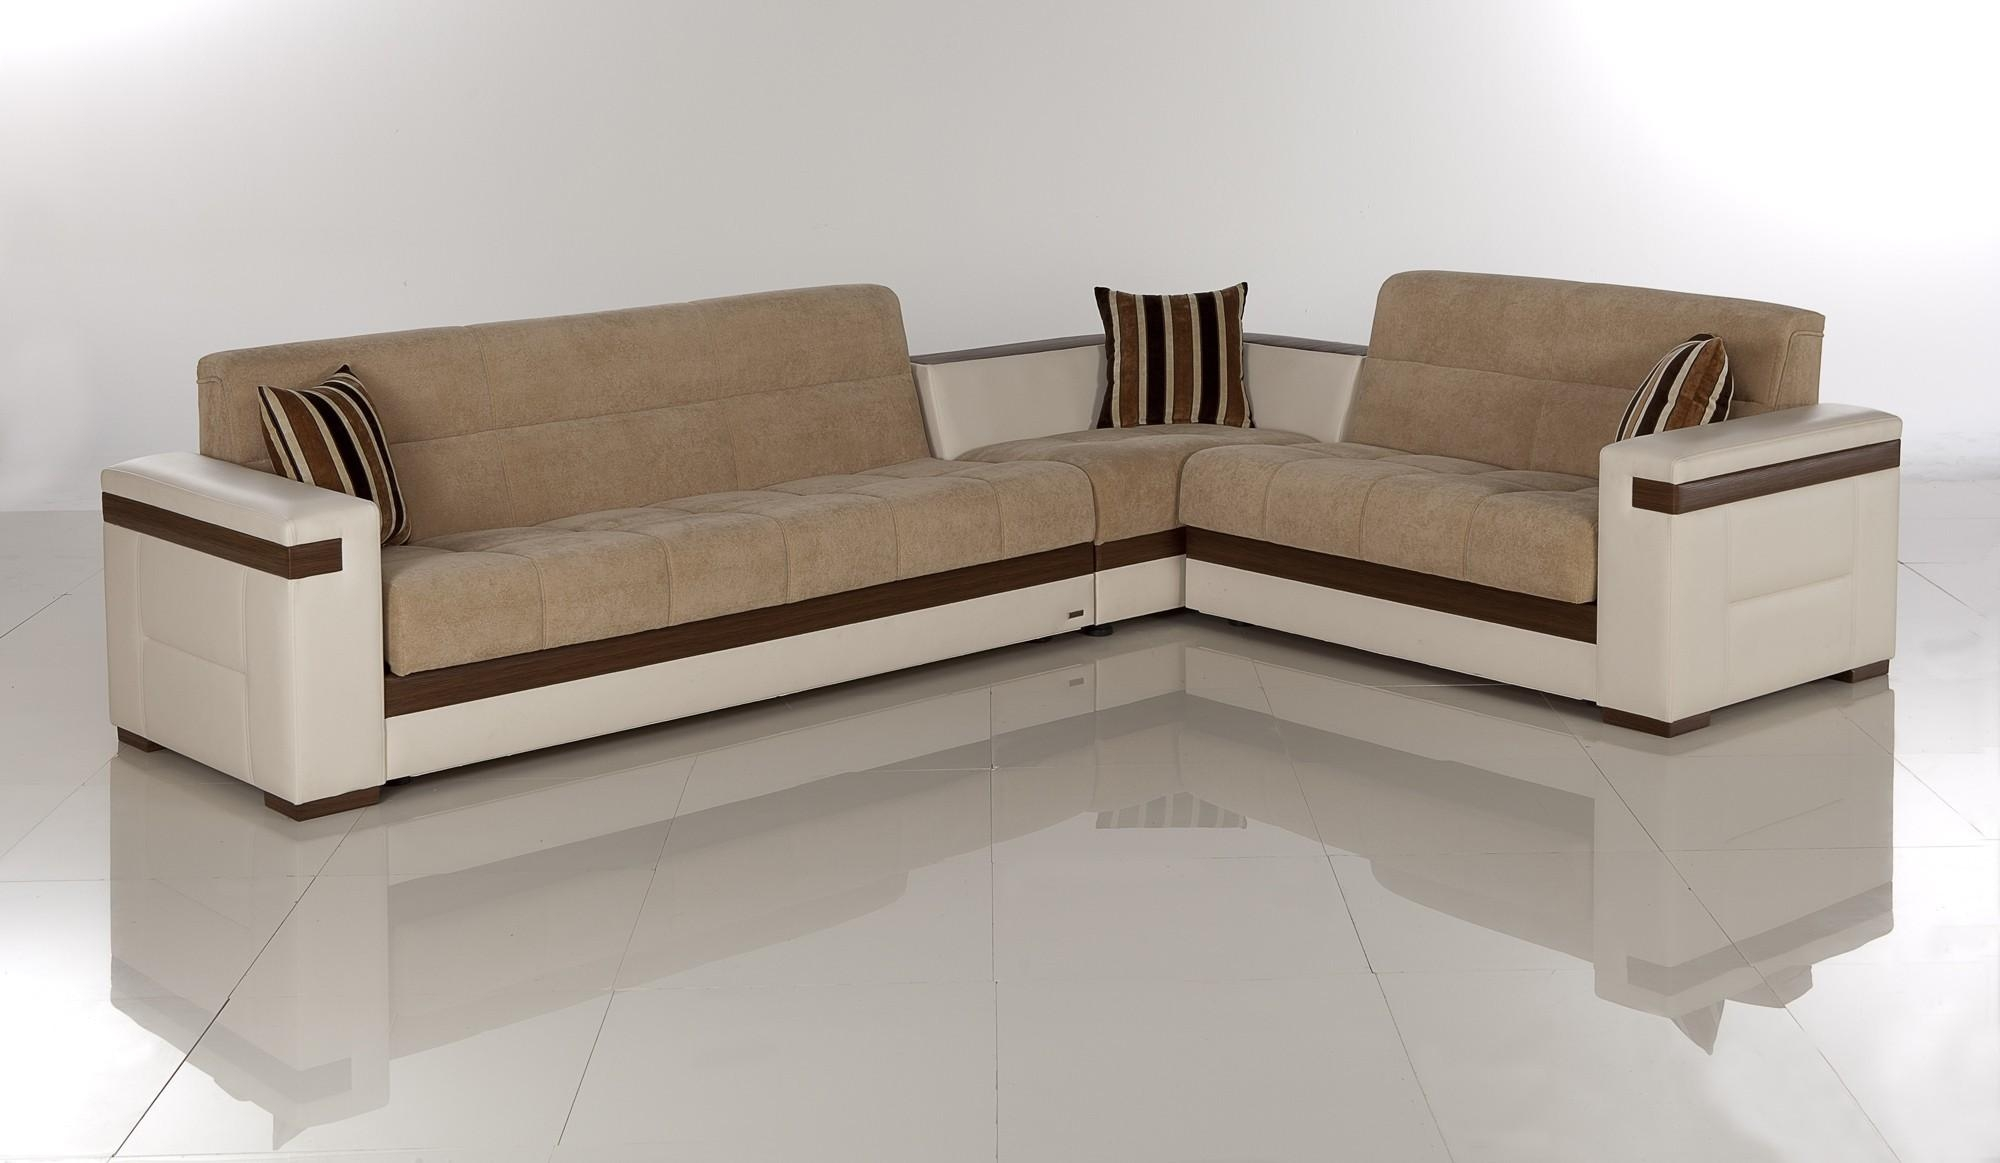 Furniture: Wondrous Alluring Sectional With Sleeper For Home Regarding Corner Sleeper Sofas (View 9 of 20)